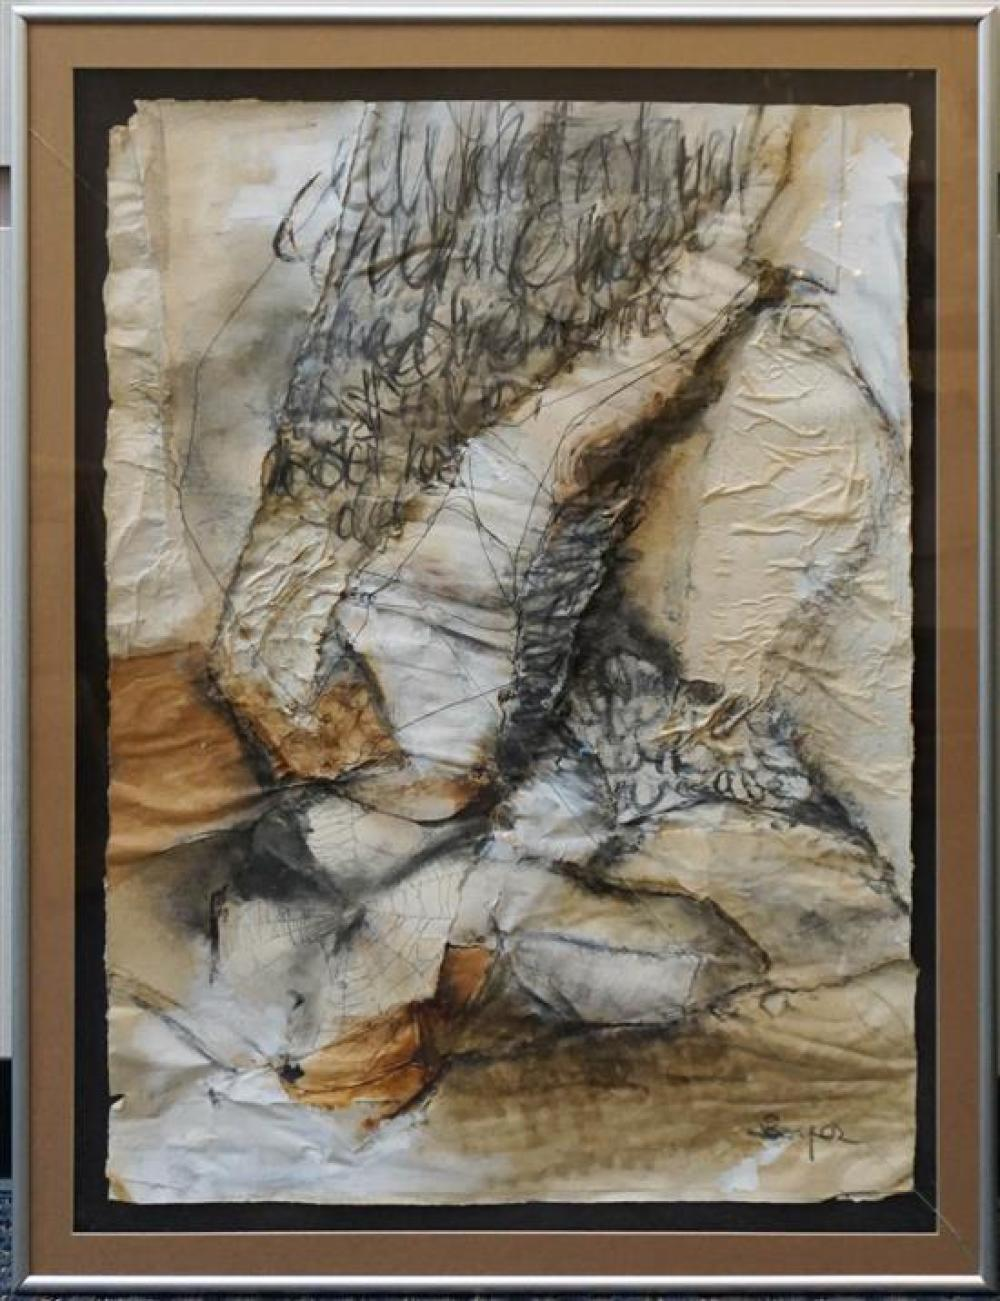 20th Century, Abstract, Mixed Media on Paper, (glass cracked) Frame: 39-1/2 x 30 in